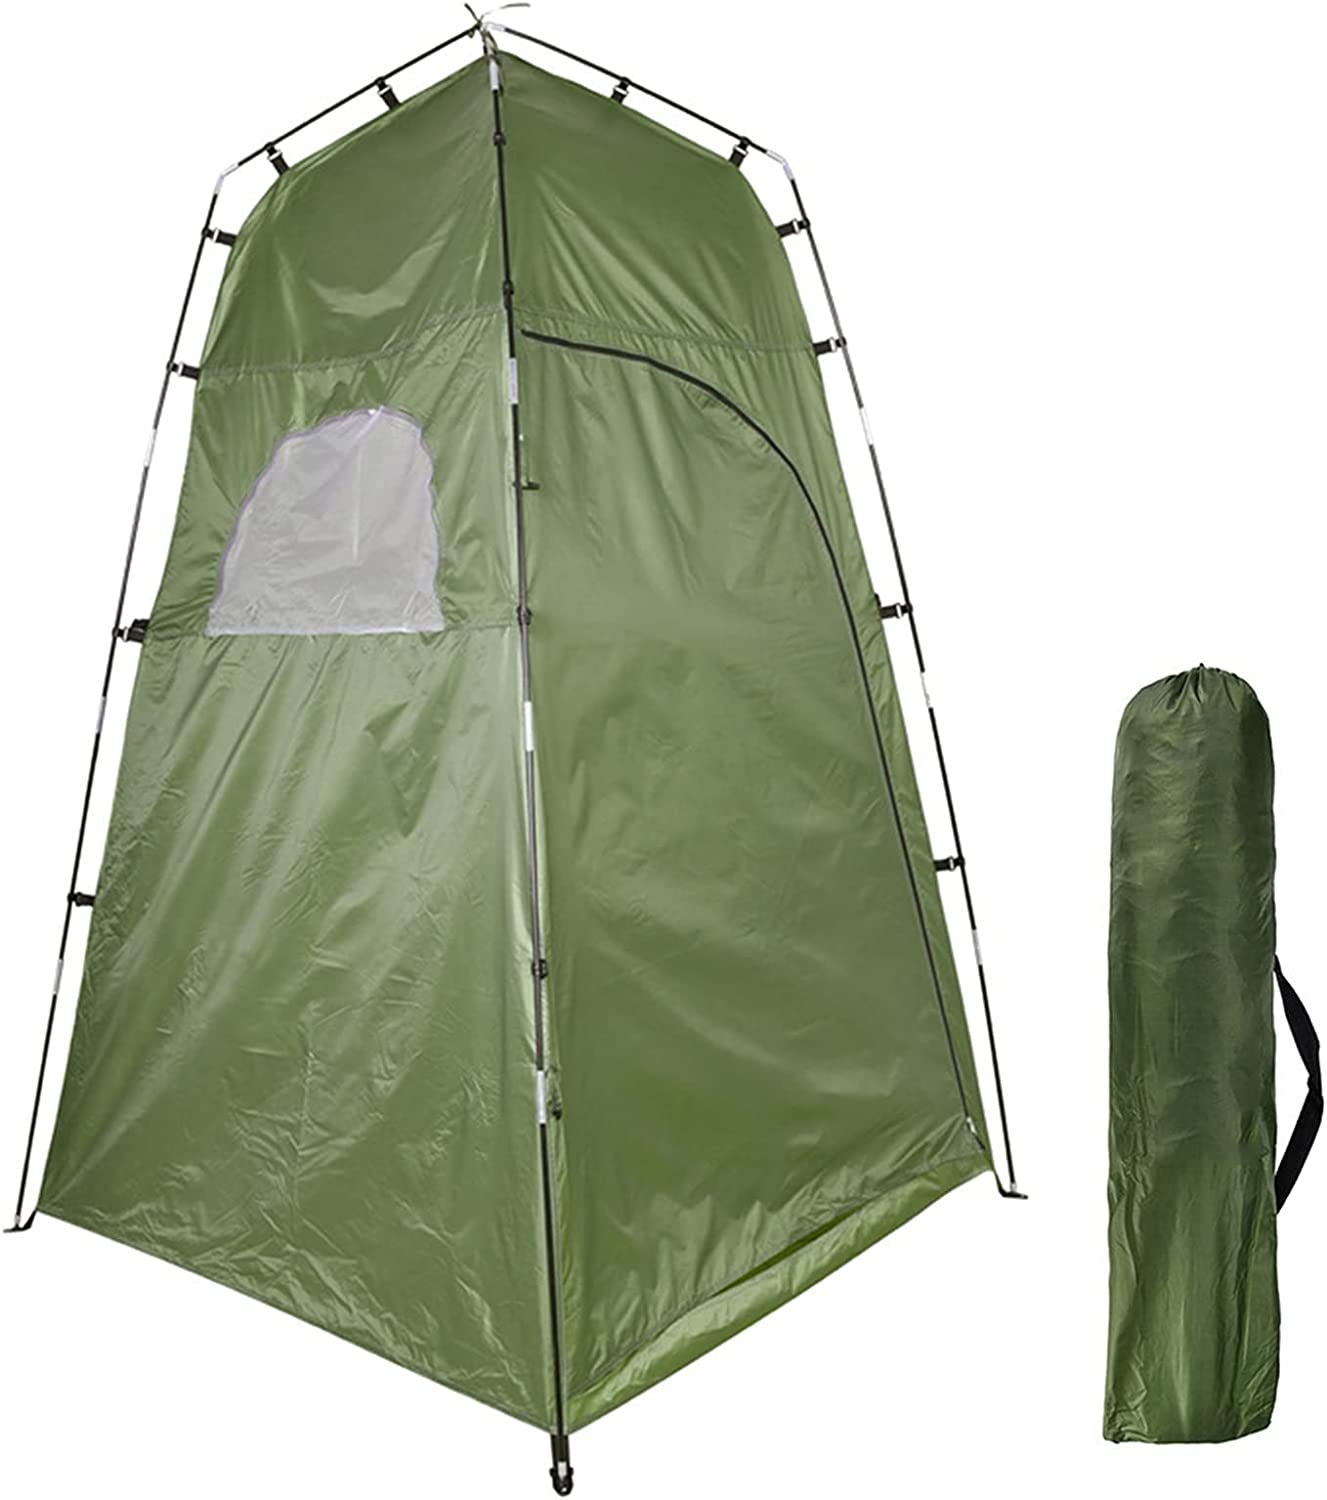 LJGFH Tent Privacy Shelter Portable Outdoor Shower C Popular standard Minneapolis Mall Toilet